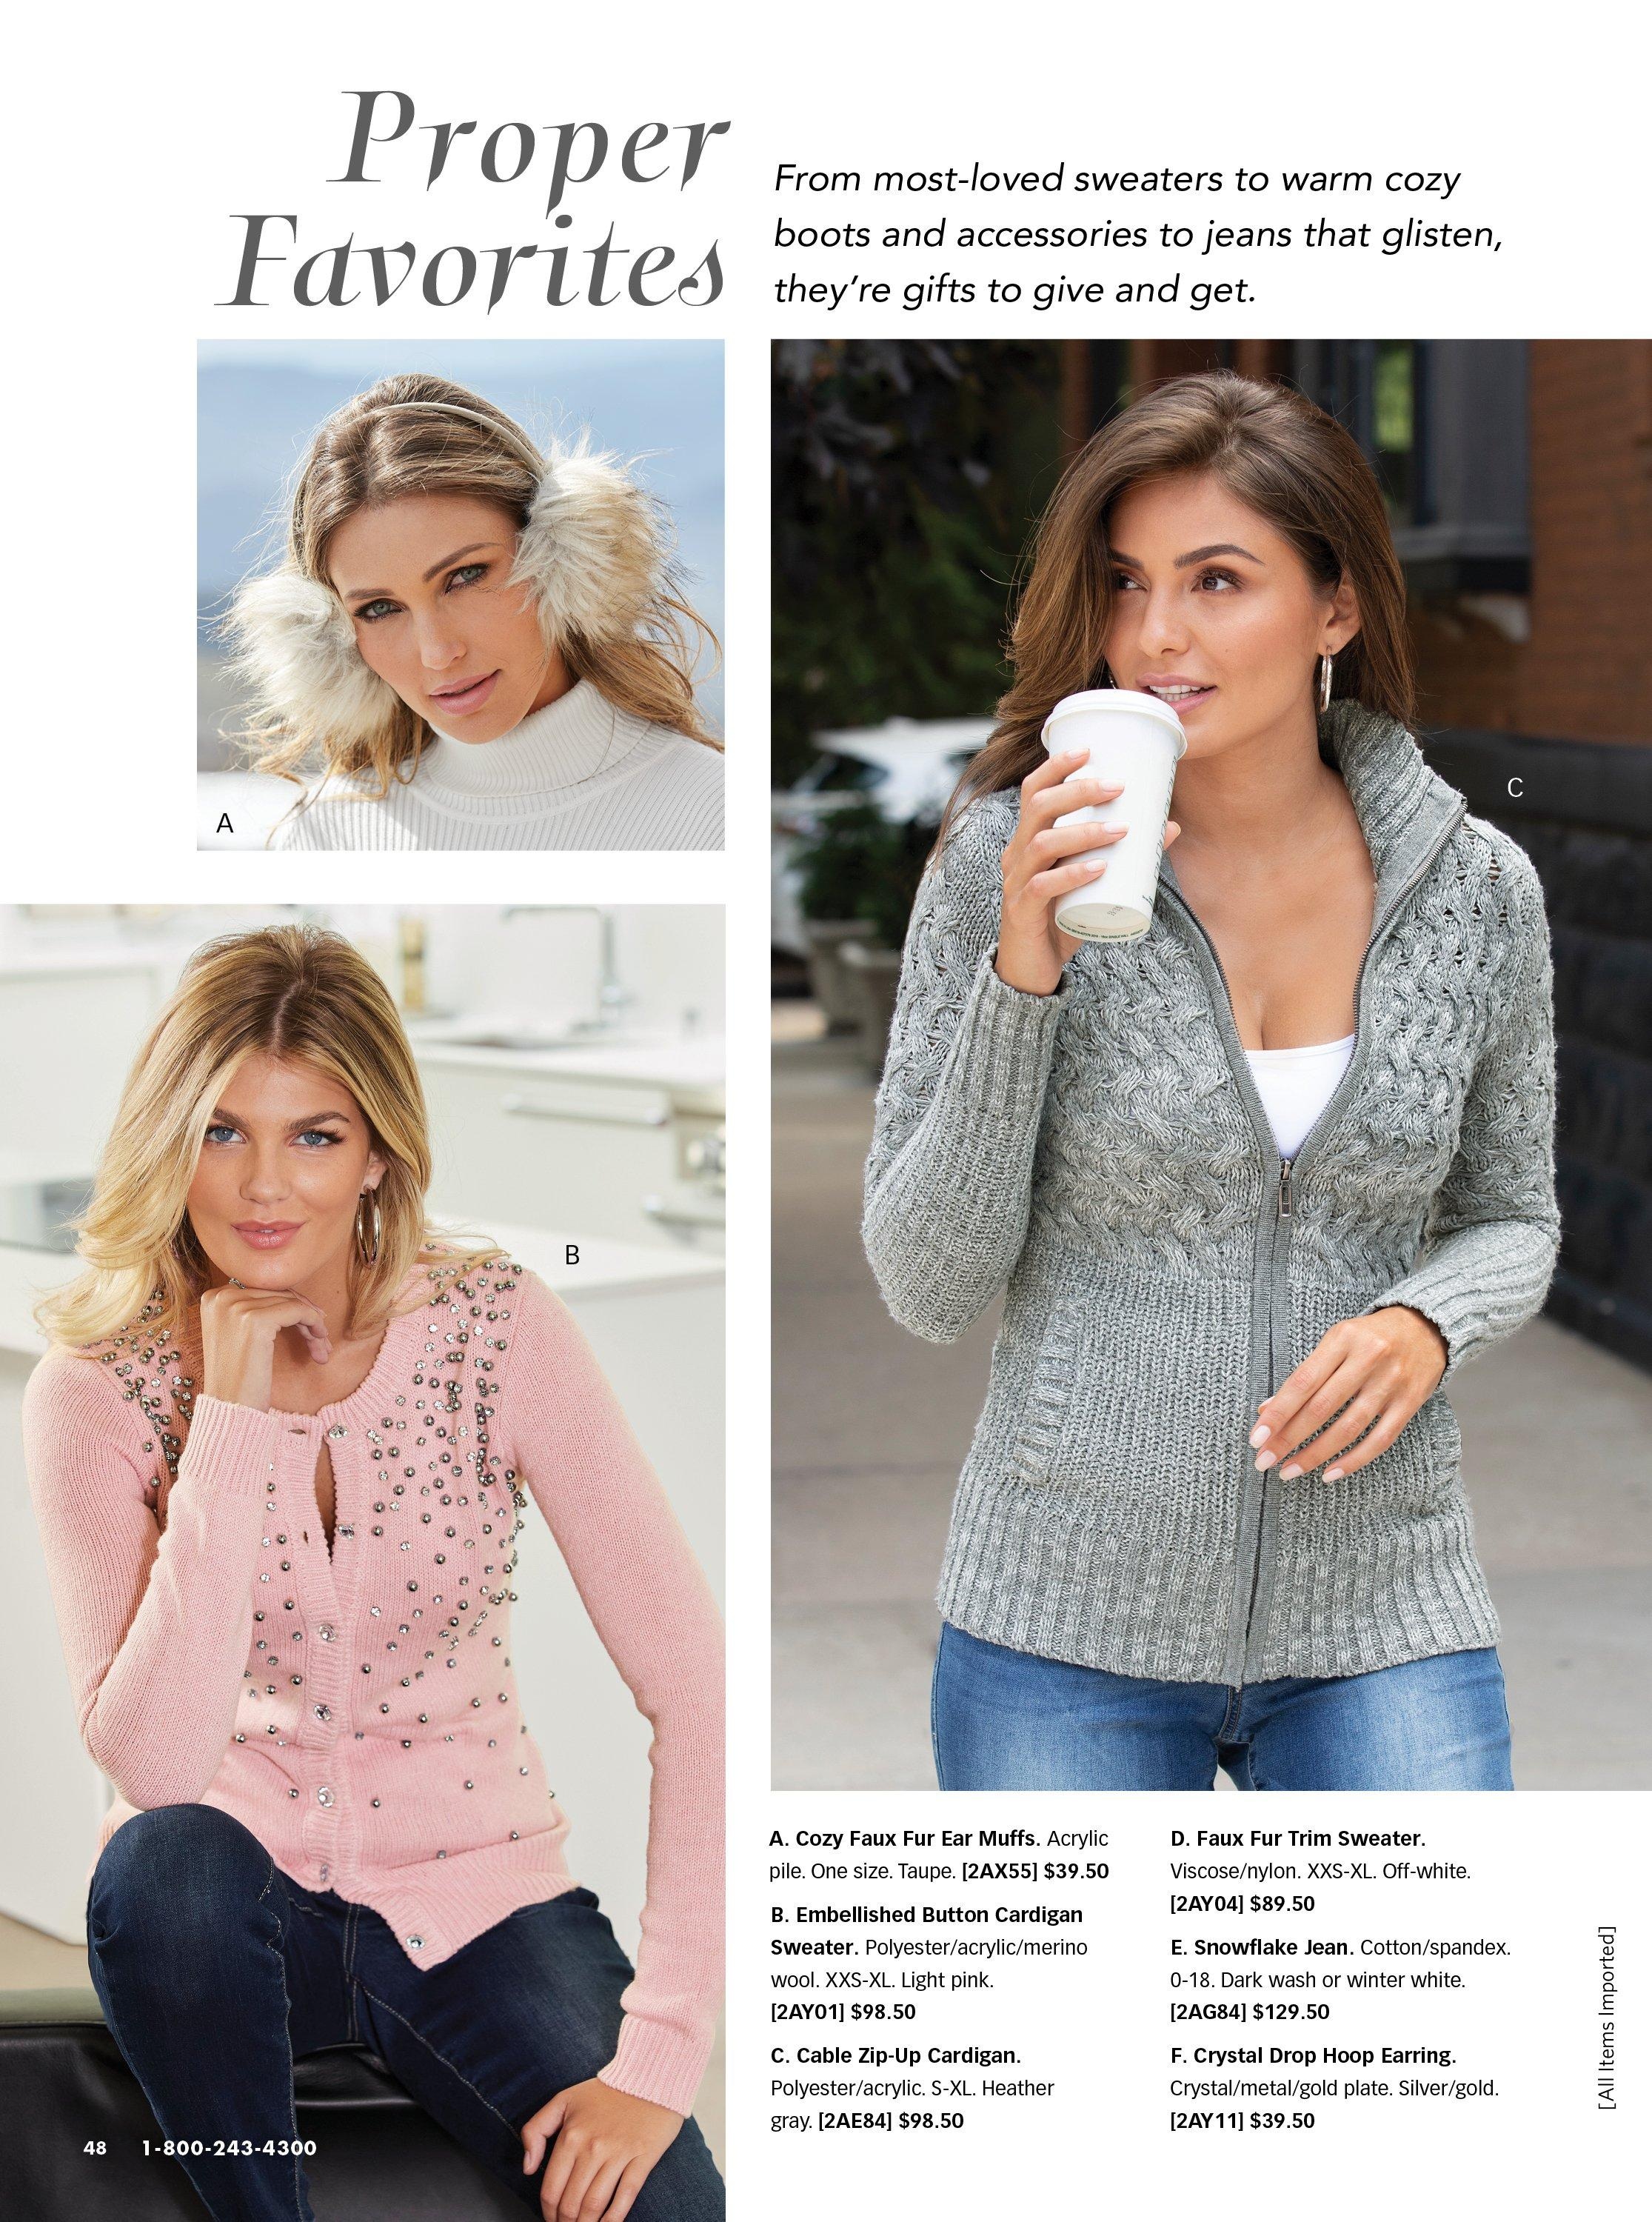 top left model wearing faux fur earmuffs. bottom left model wearing a light pink jewel embellished button up cardigan. right model wearing a gray cable knit zip-up cardigan, white tank top, and jeans.